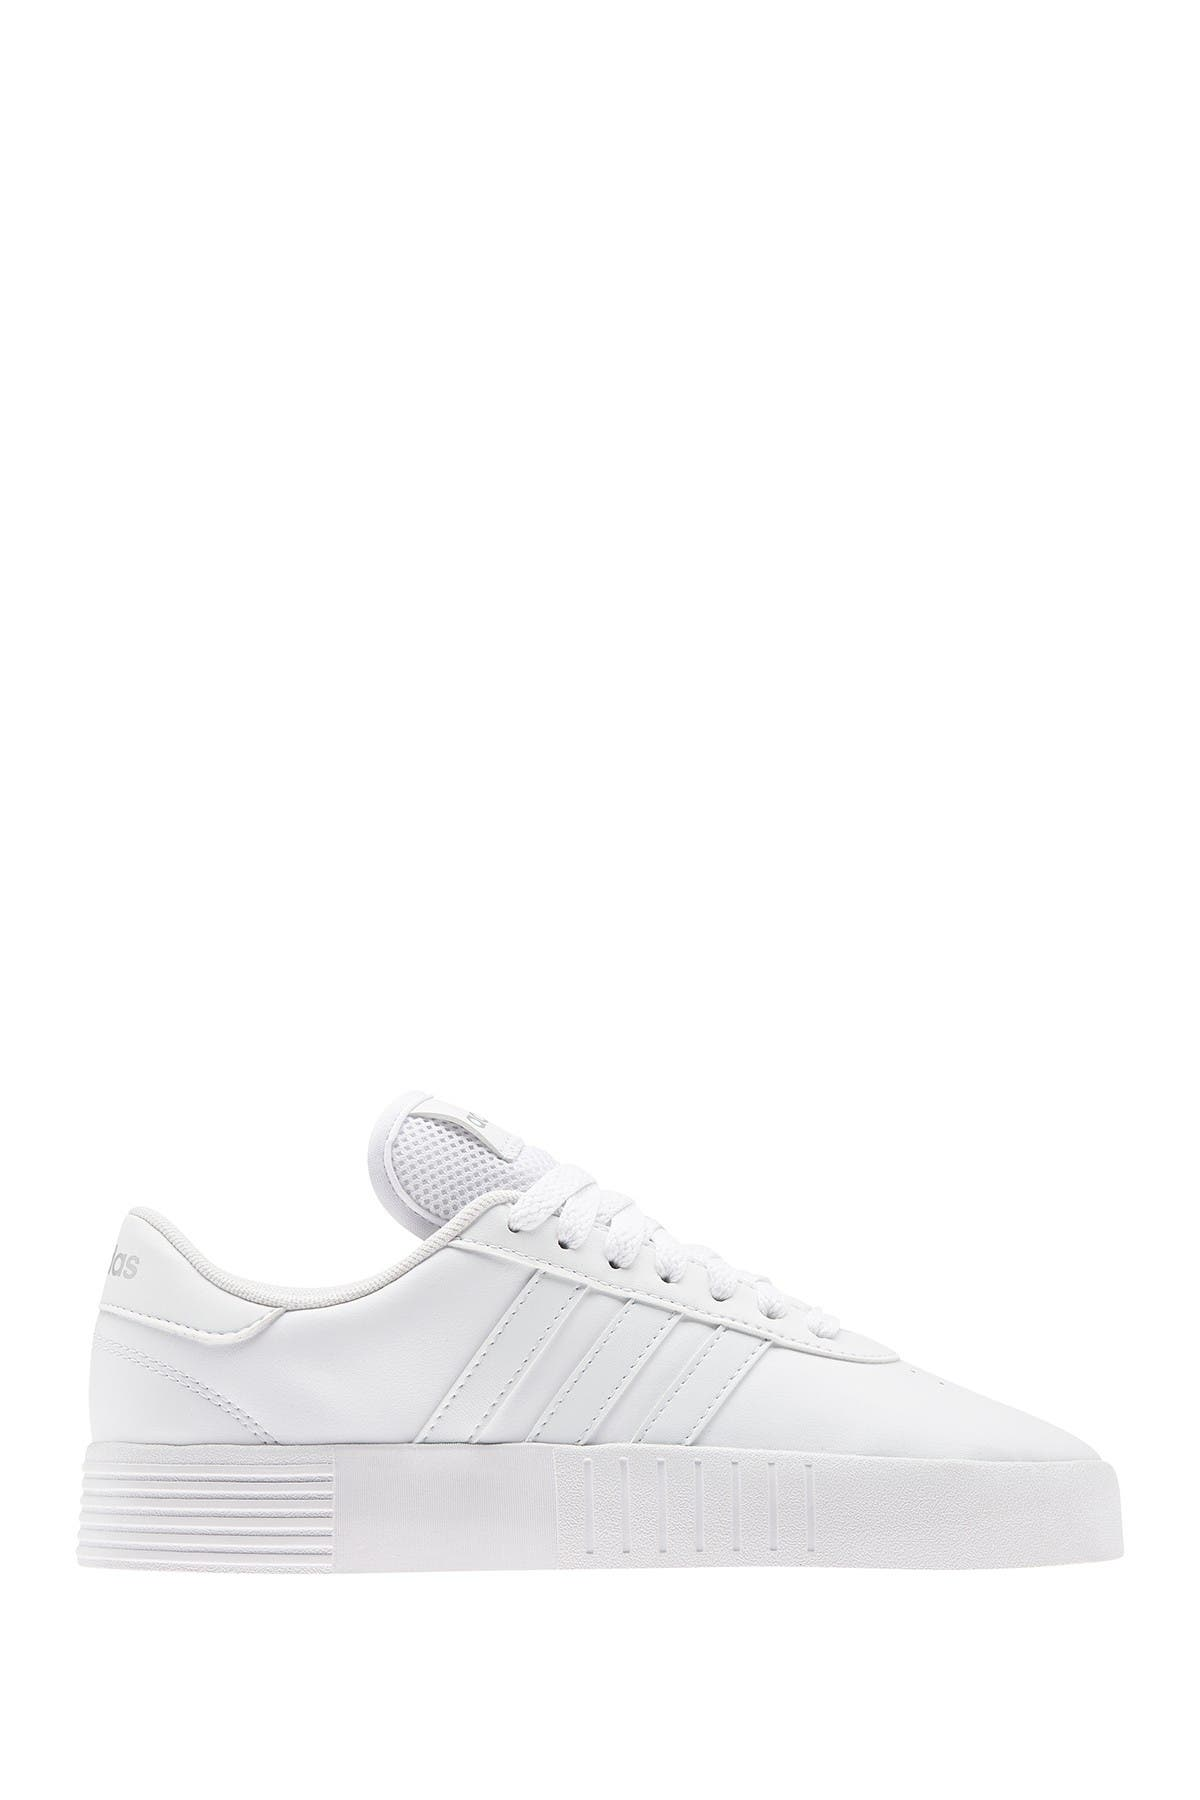 Image of adidas Court Bold Sneaker